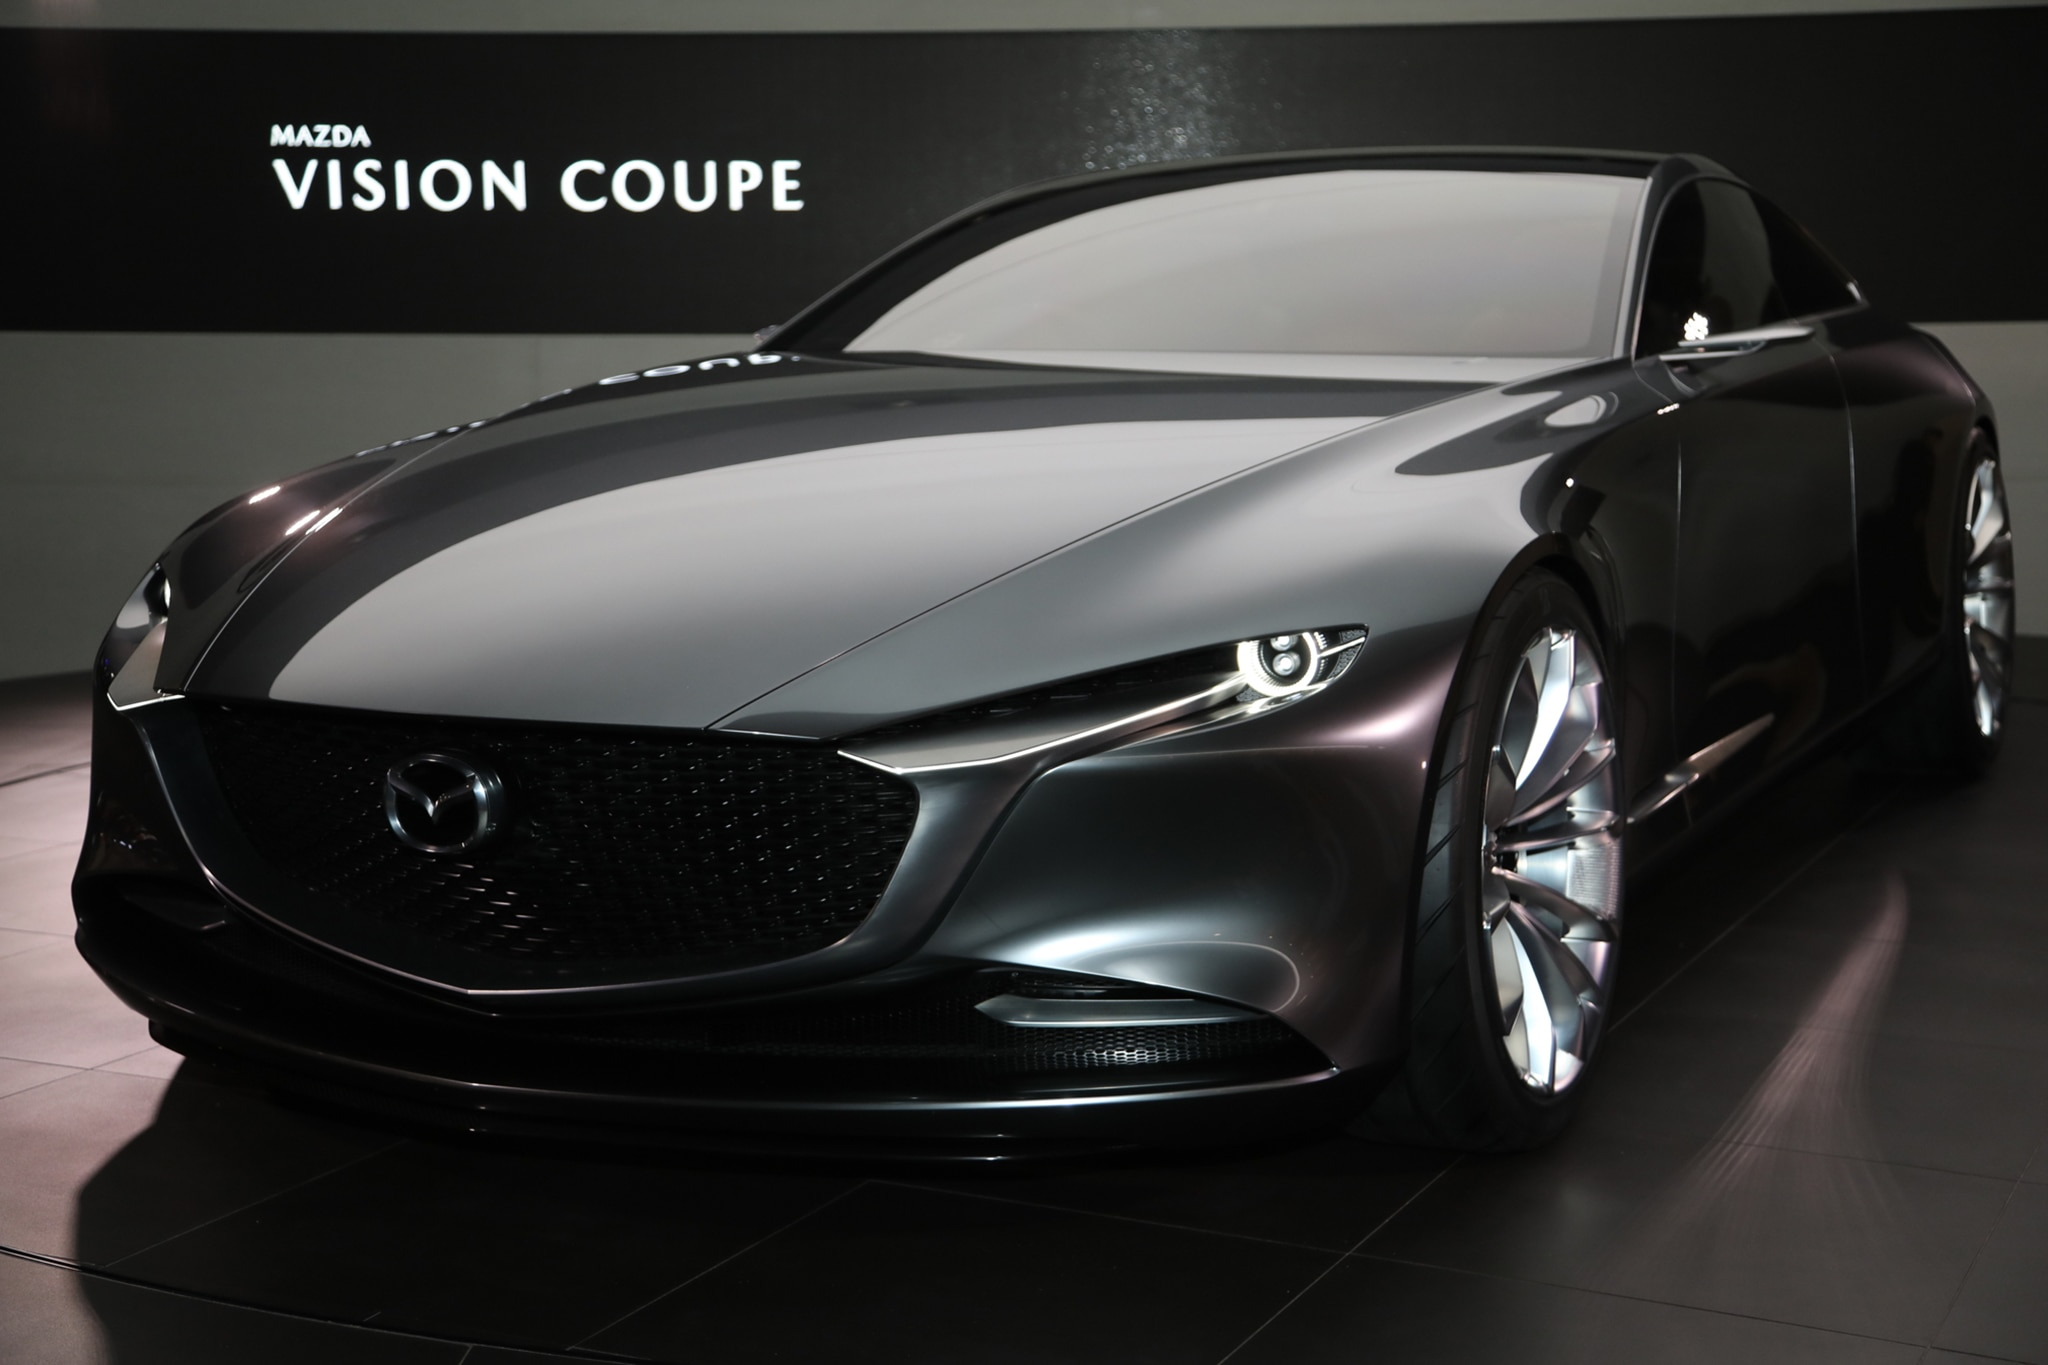 http://st.automobilemag.com/uploads/sites/11/2017/10/Mazda-Vision-Coupe-concept-front-three-quarter-01.jpg